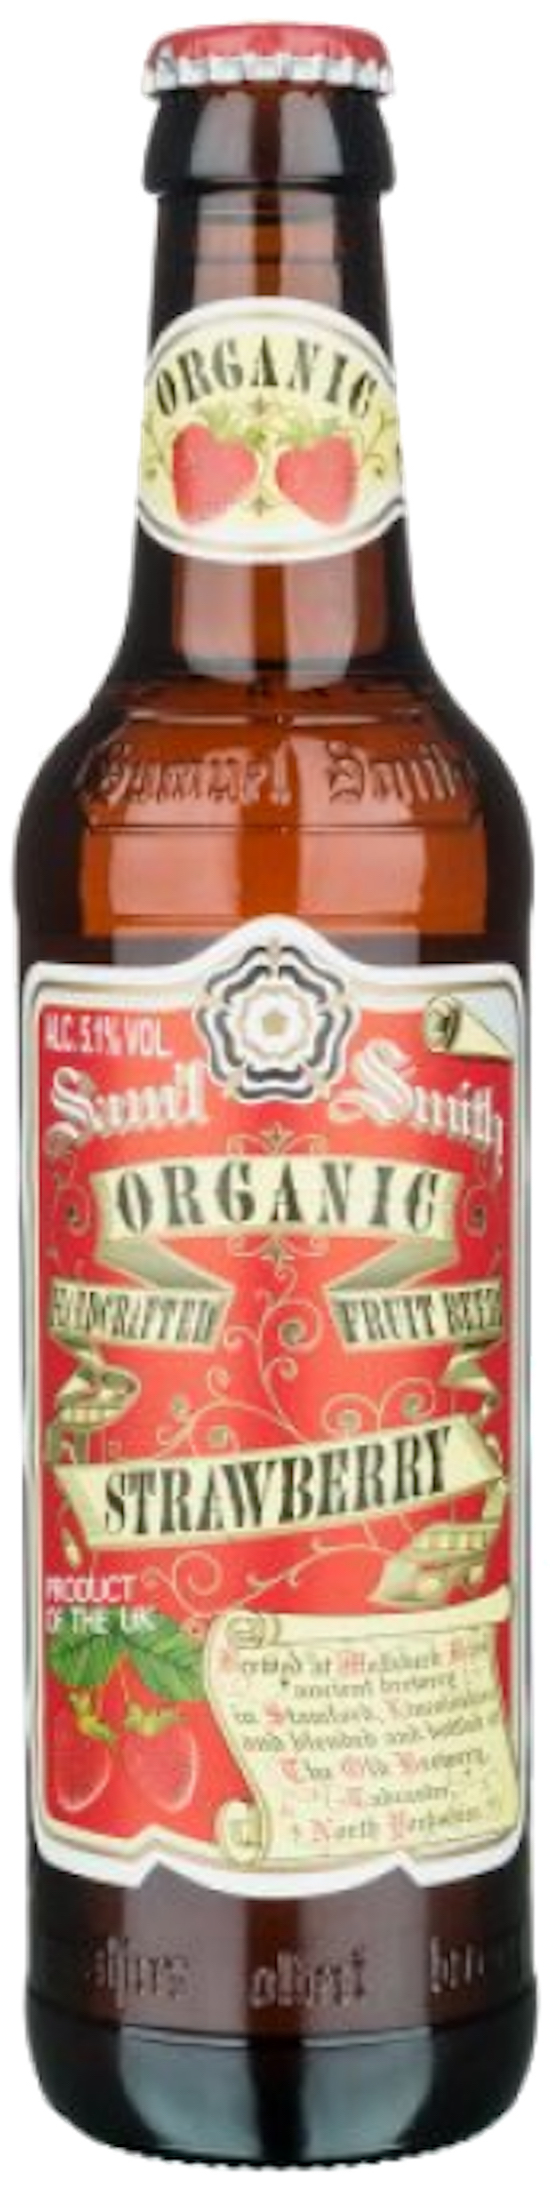 samuel-smiths-brewery-organic-strawberry-fruit-ale-beer